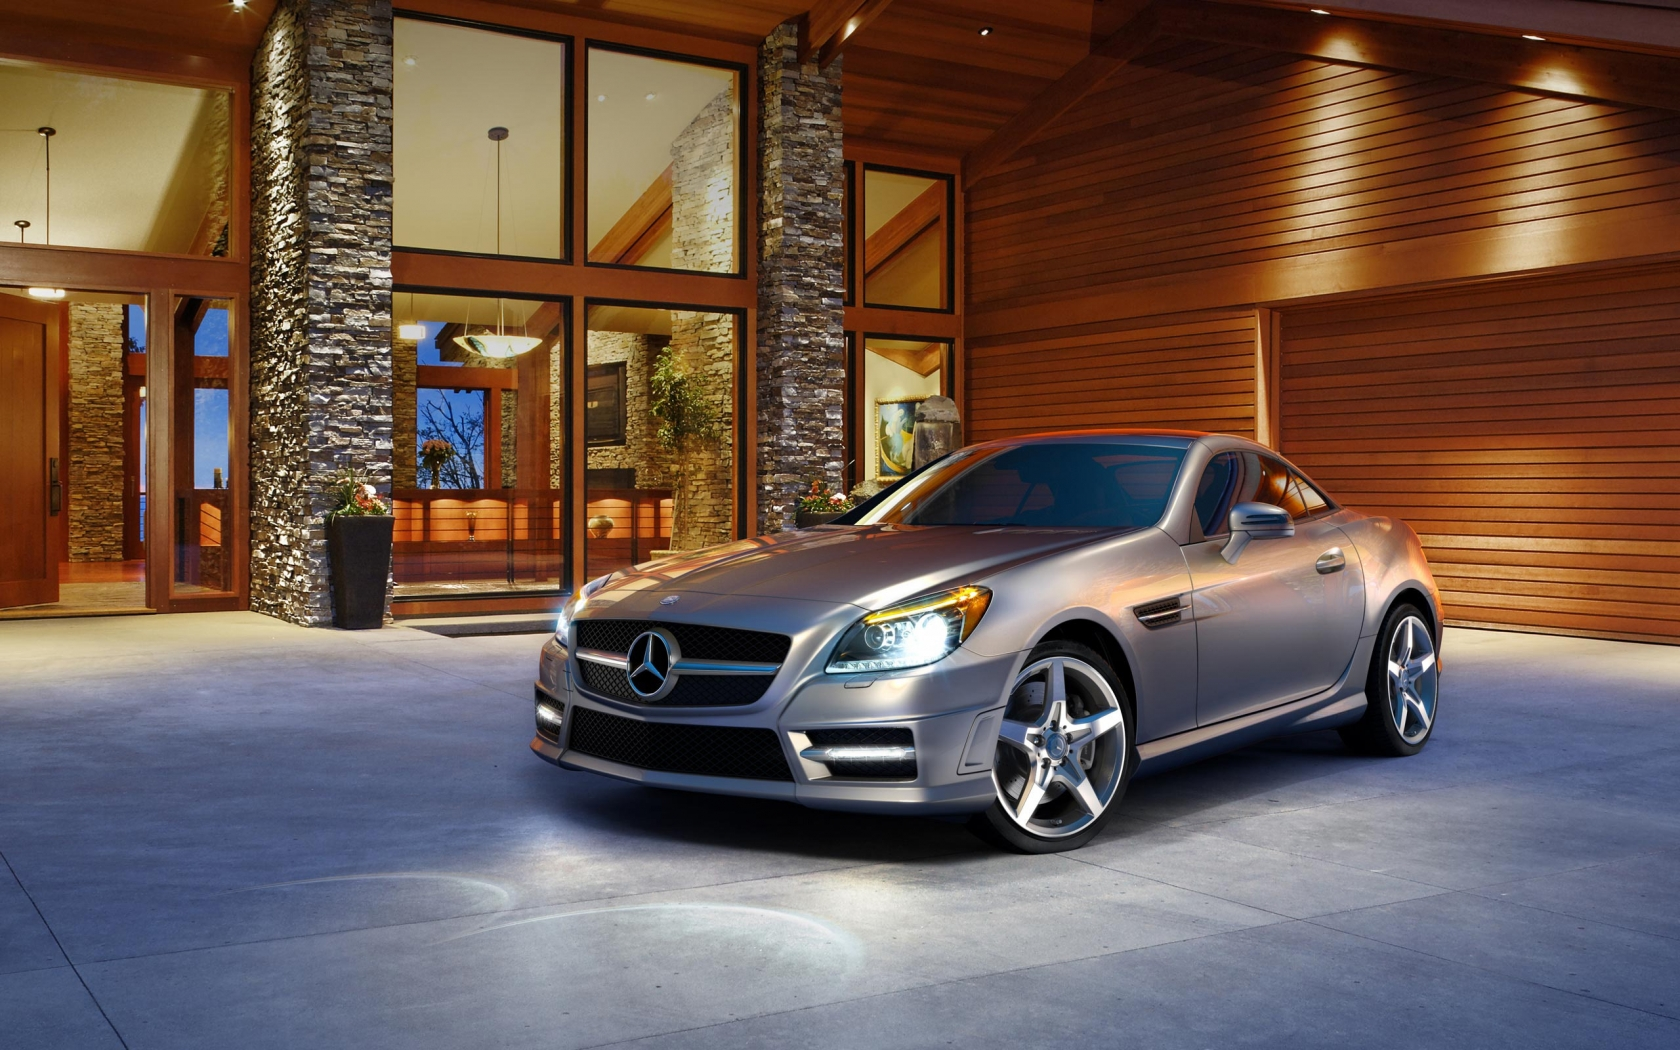 2012 SLK Class Roadster for 1680 x 1050 widescreen resolution